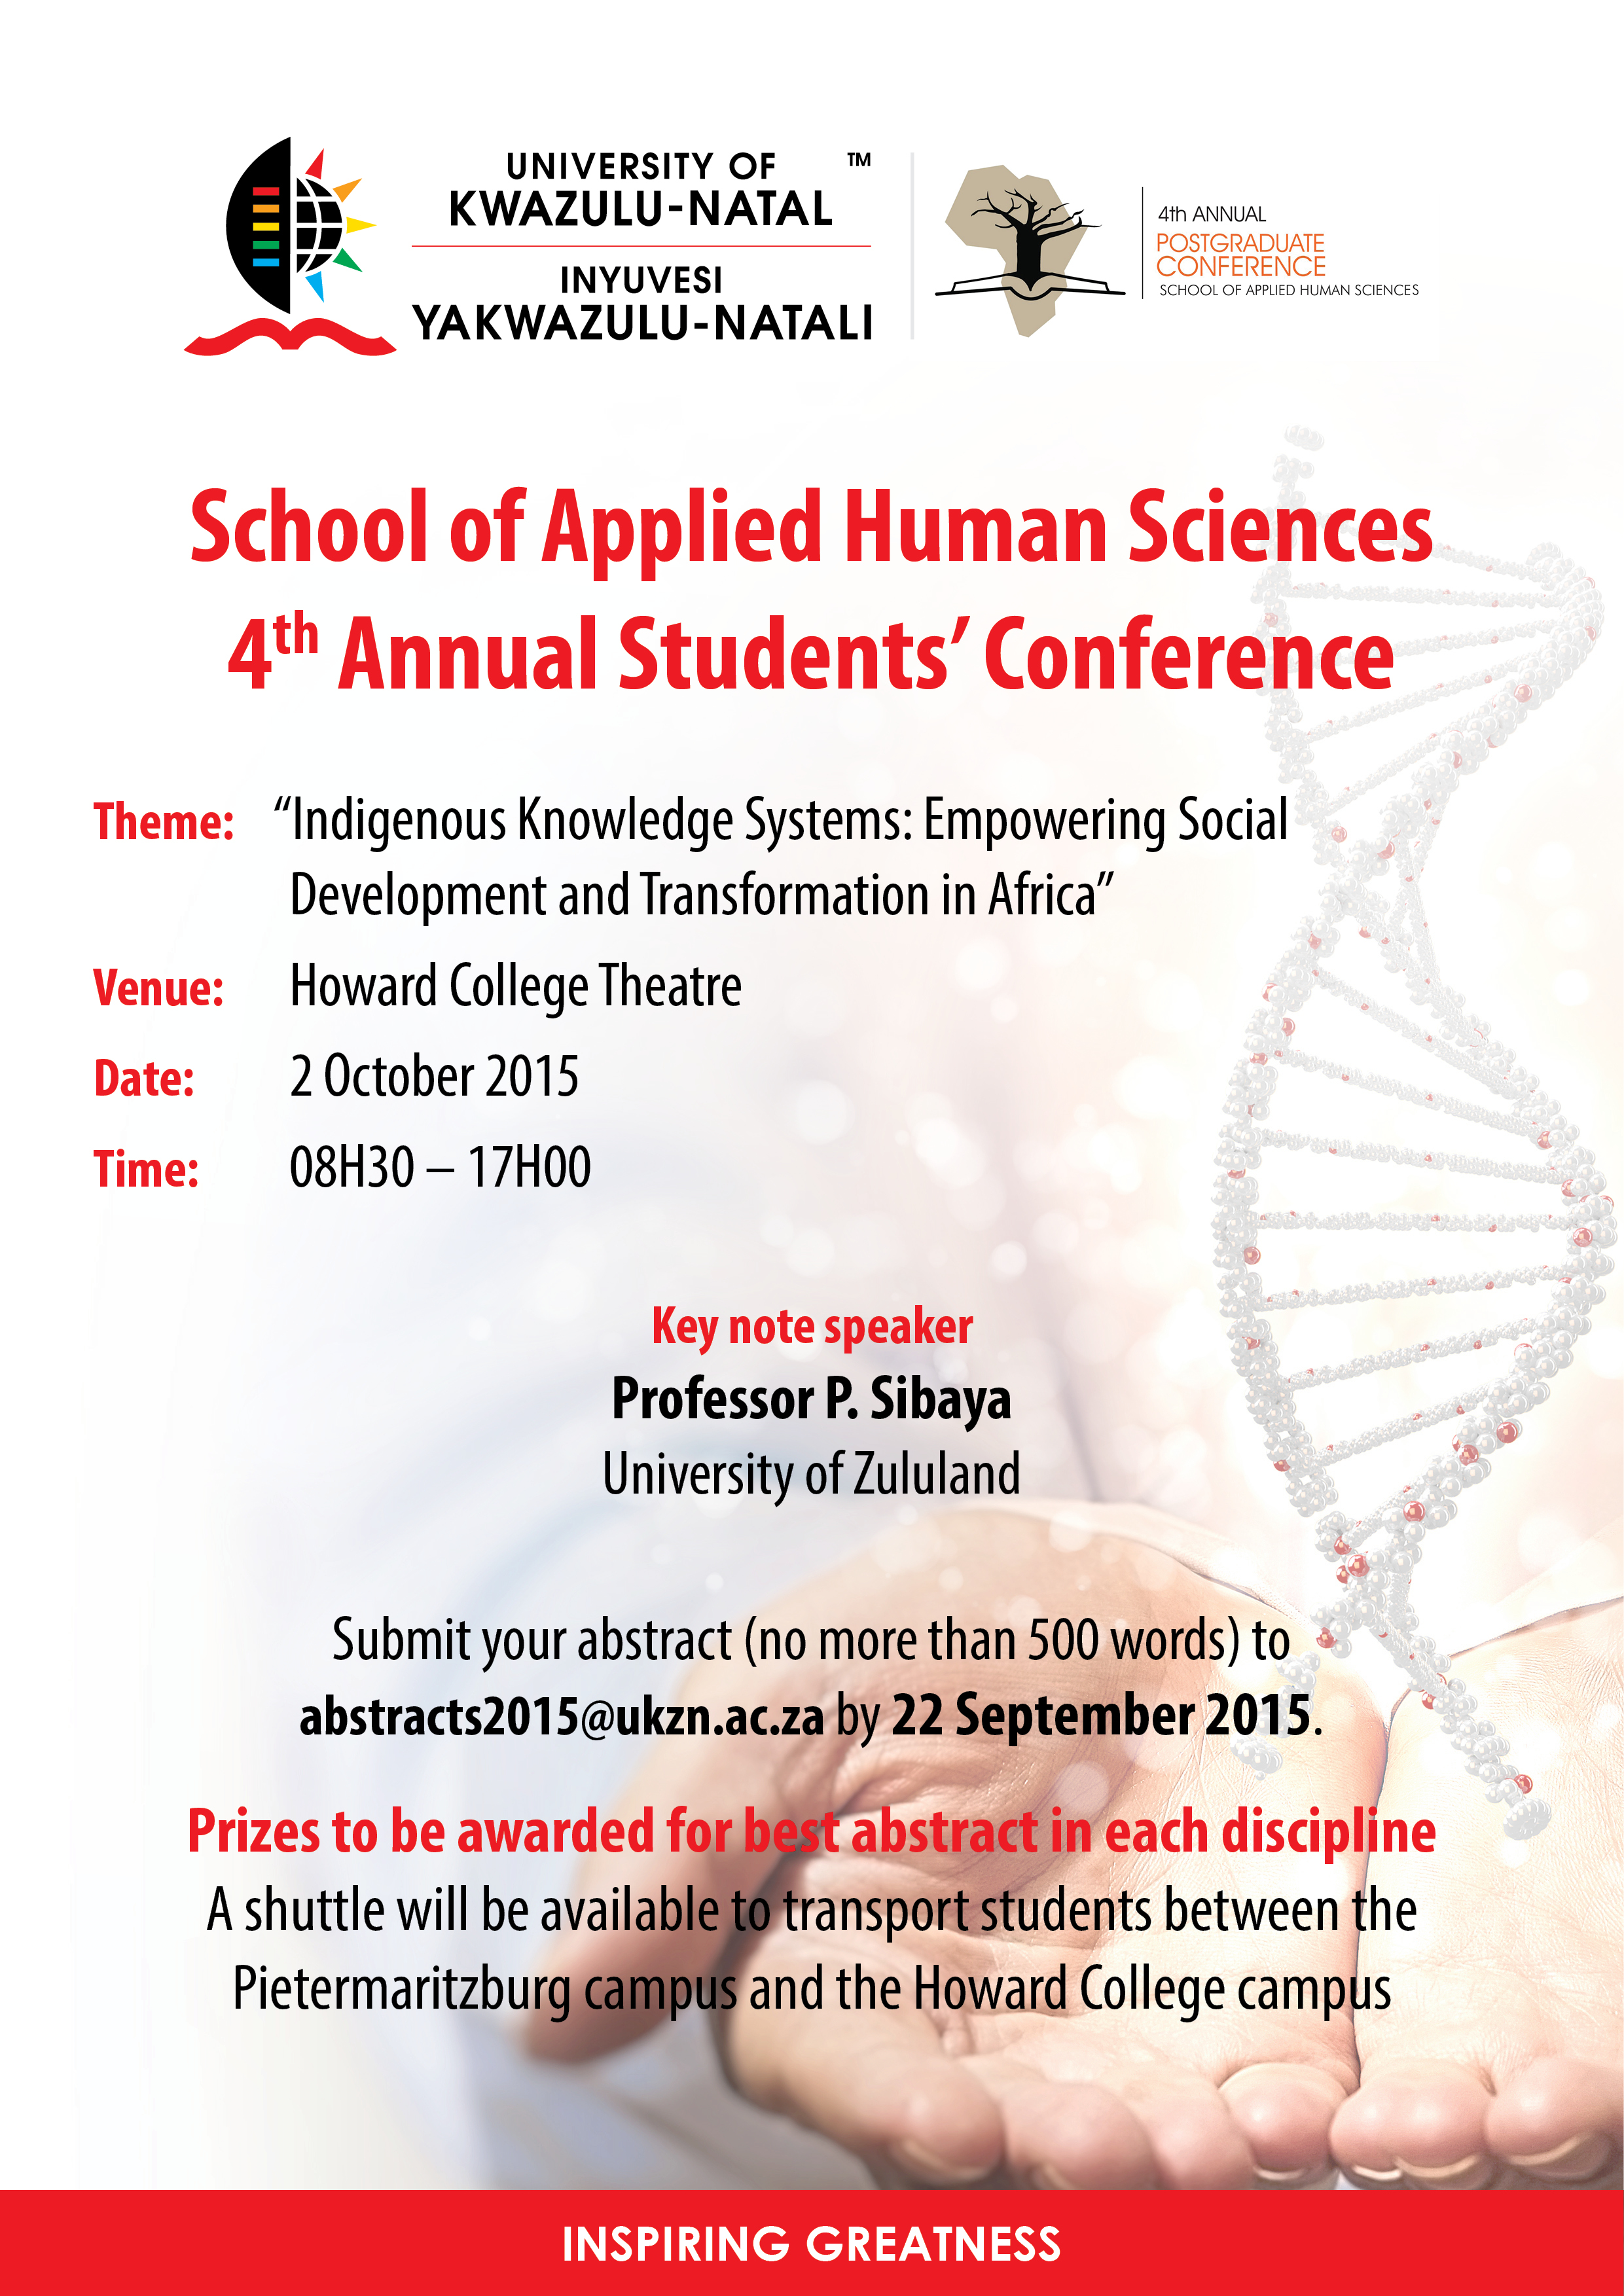 4th Annual Students Conference